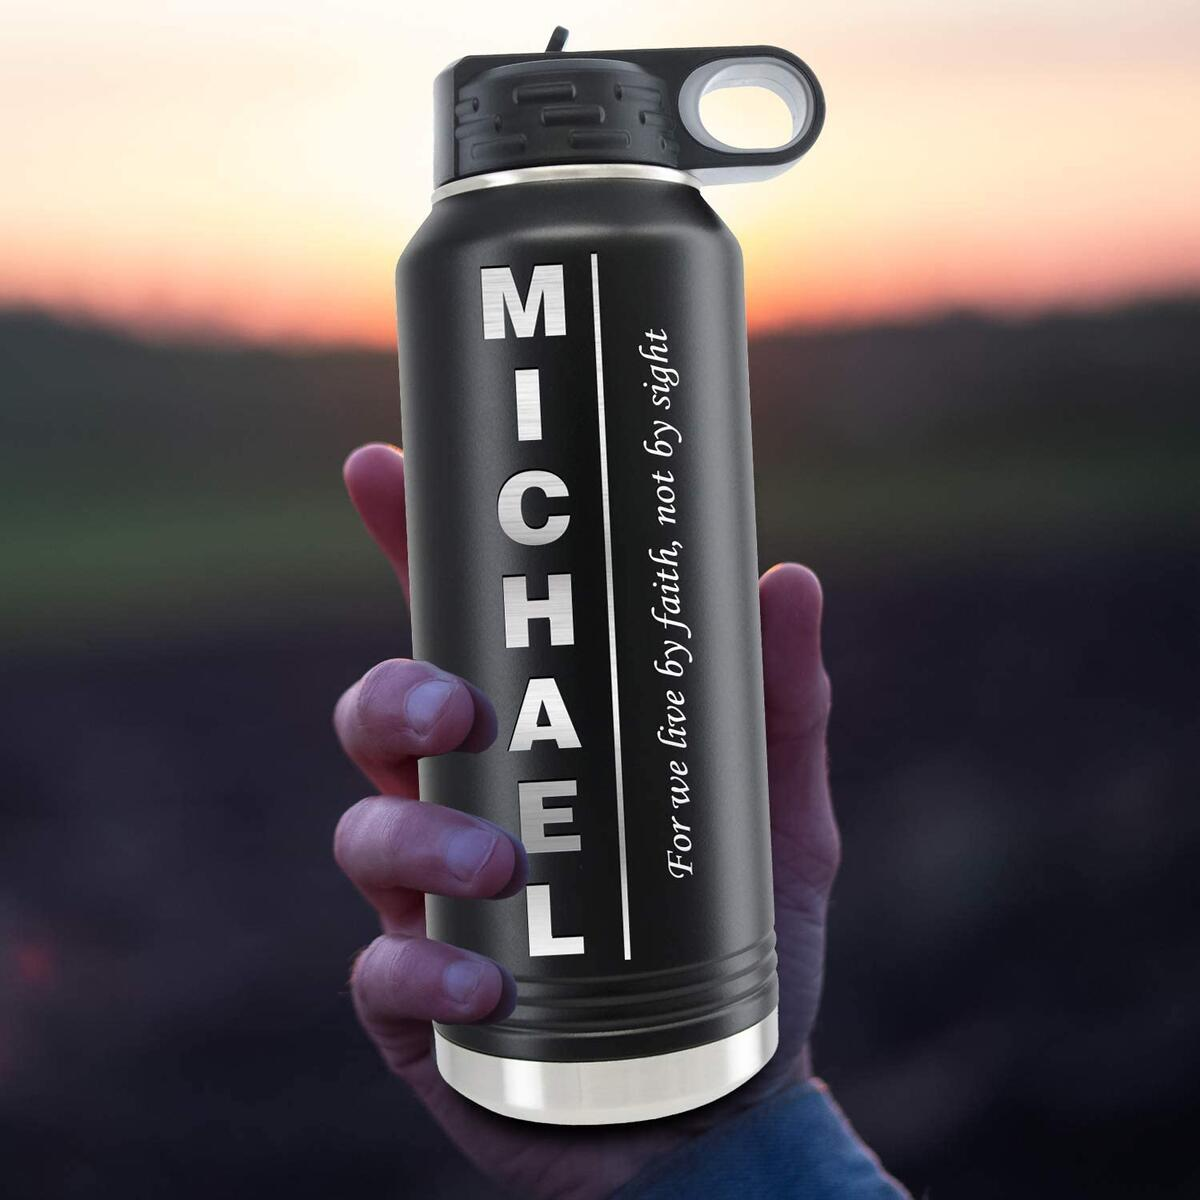 Personalized Water Bottles 32oz with Flip-top Lid and Straw, Customized Vacuum Insulated Water Flask, Stainless Steel Sports Double Wall Thermos, Your Name Text Engraved in USA by iProductsUS (9 Colors)